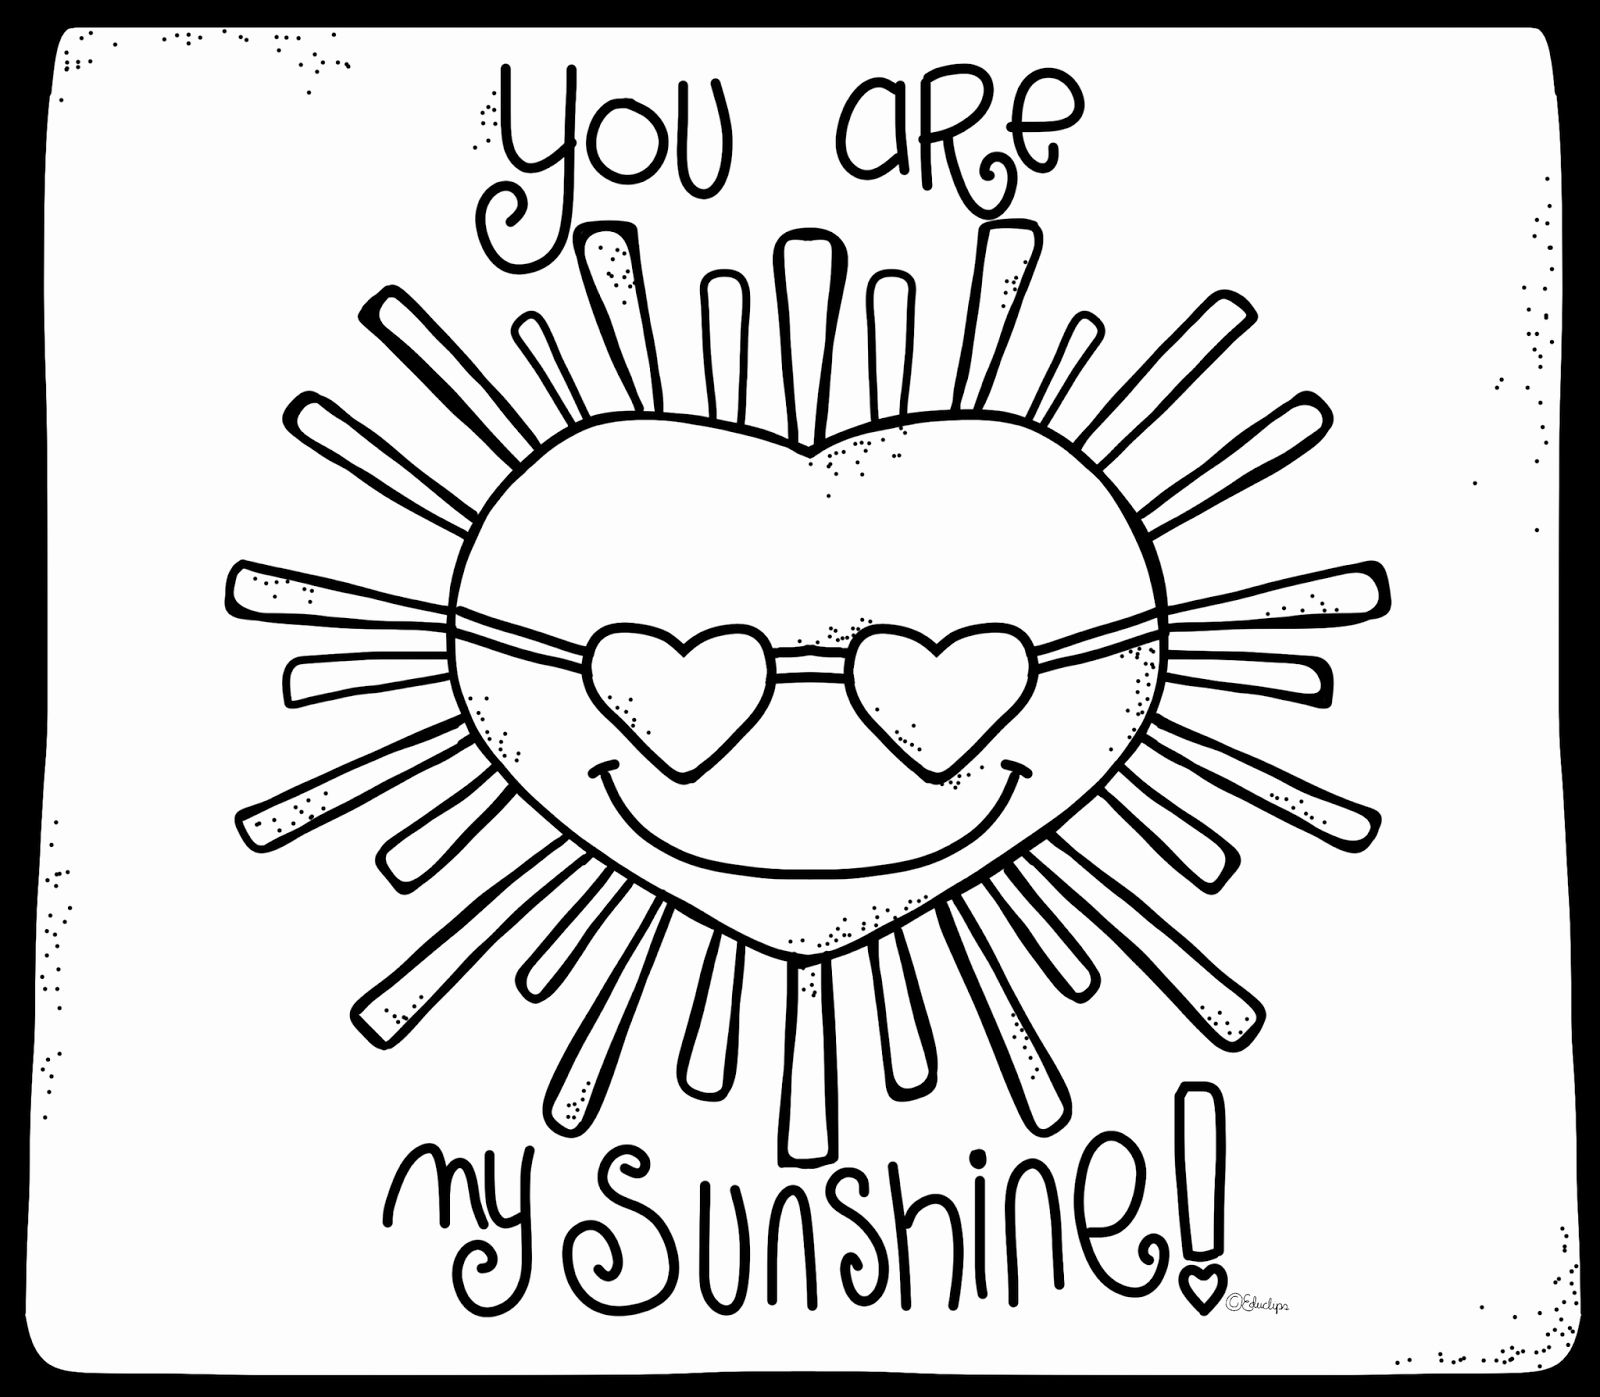 You Are My Sunshine Coloring Page Awesome You Are My Sunshine Coloring Pages Free Sketch Coloring Page Quote Coloring Pages You Are My Sunshine Coloring Pages